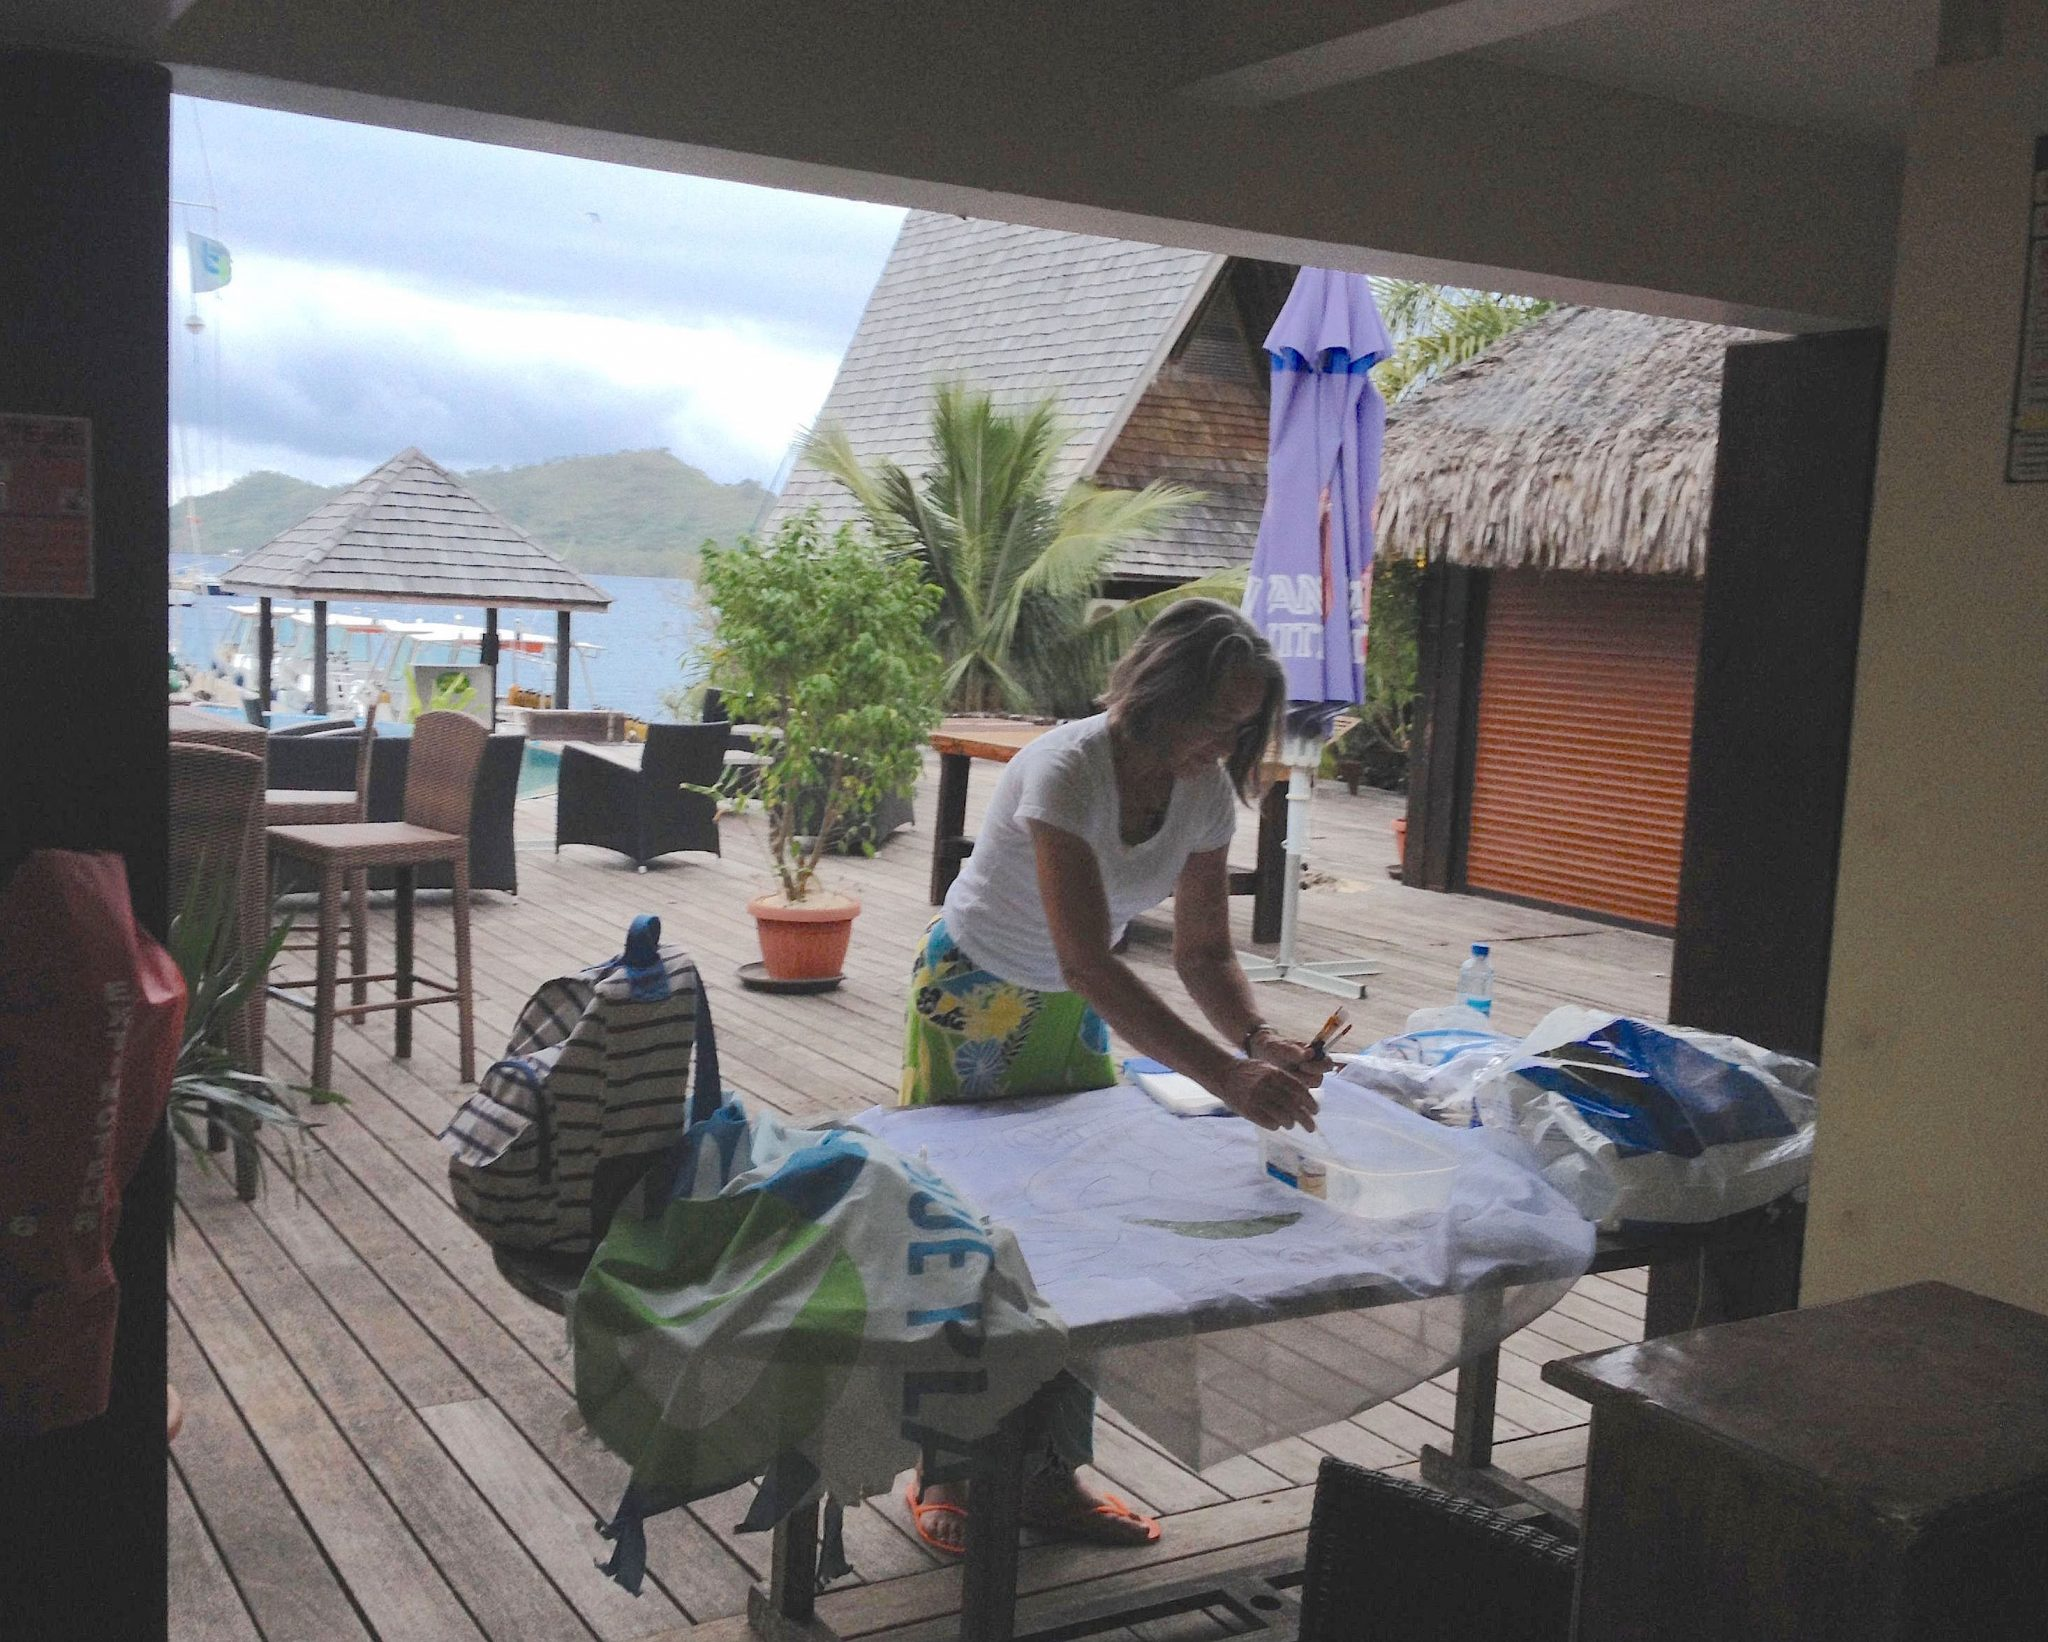 43. Anne paintied Joyful's new Blue Planet Odyssey flag on the veranda of the MaiKai Restaurant and Yacht Club in Bora Bora.